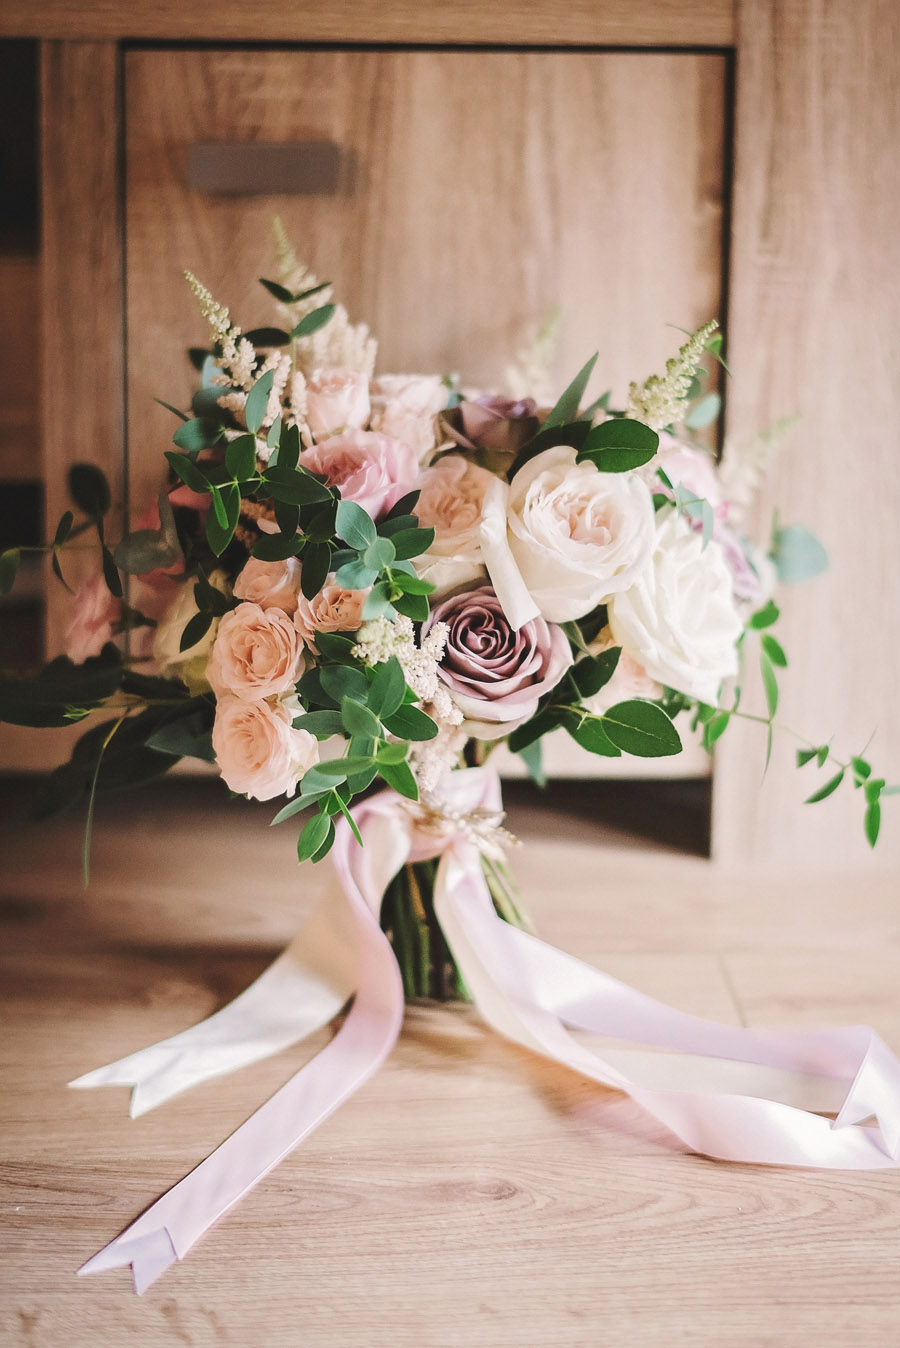 Eversholt Hall wedding with feminine floral styling, image credit Matthew Bishop Photography (1)